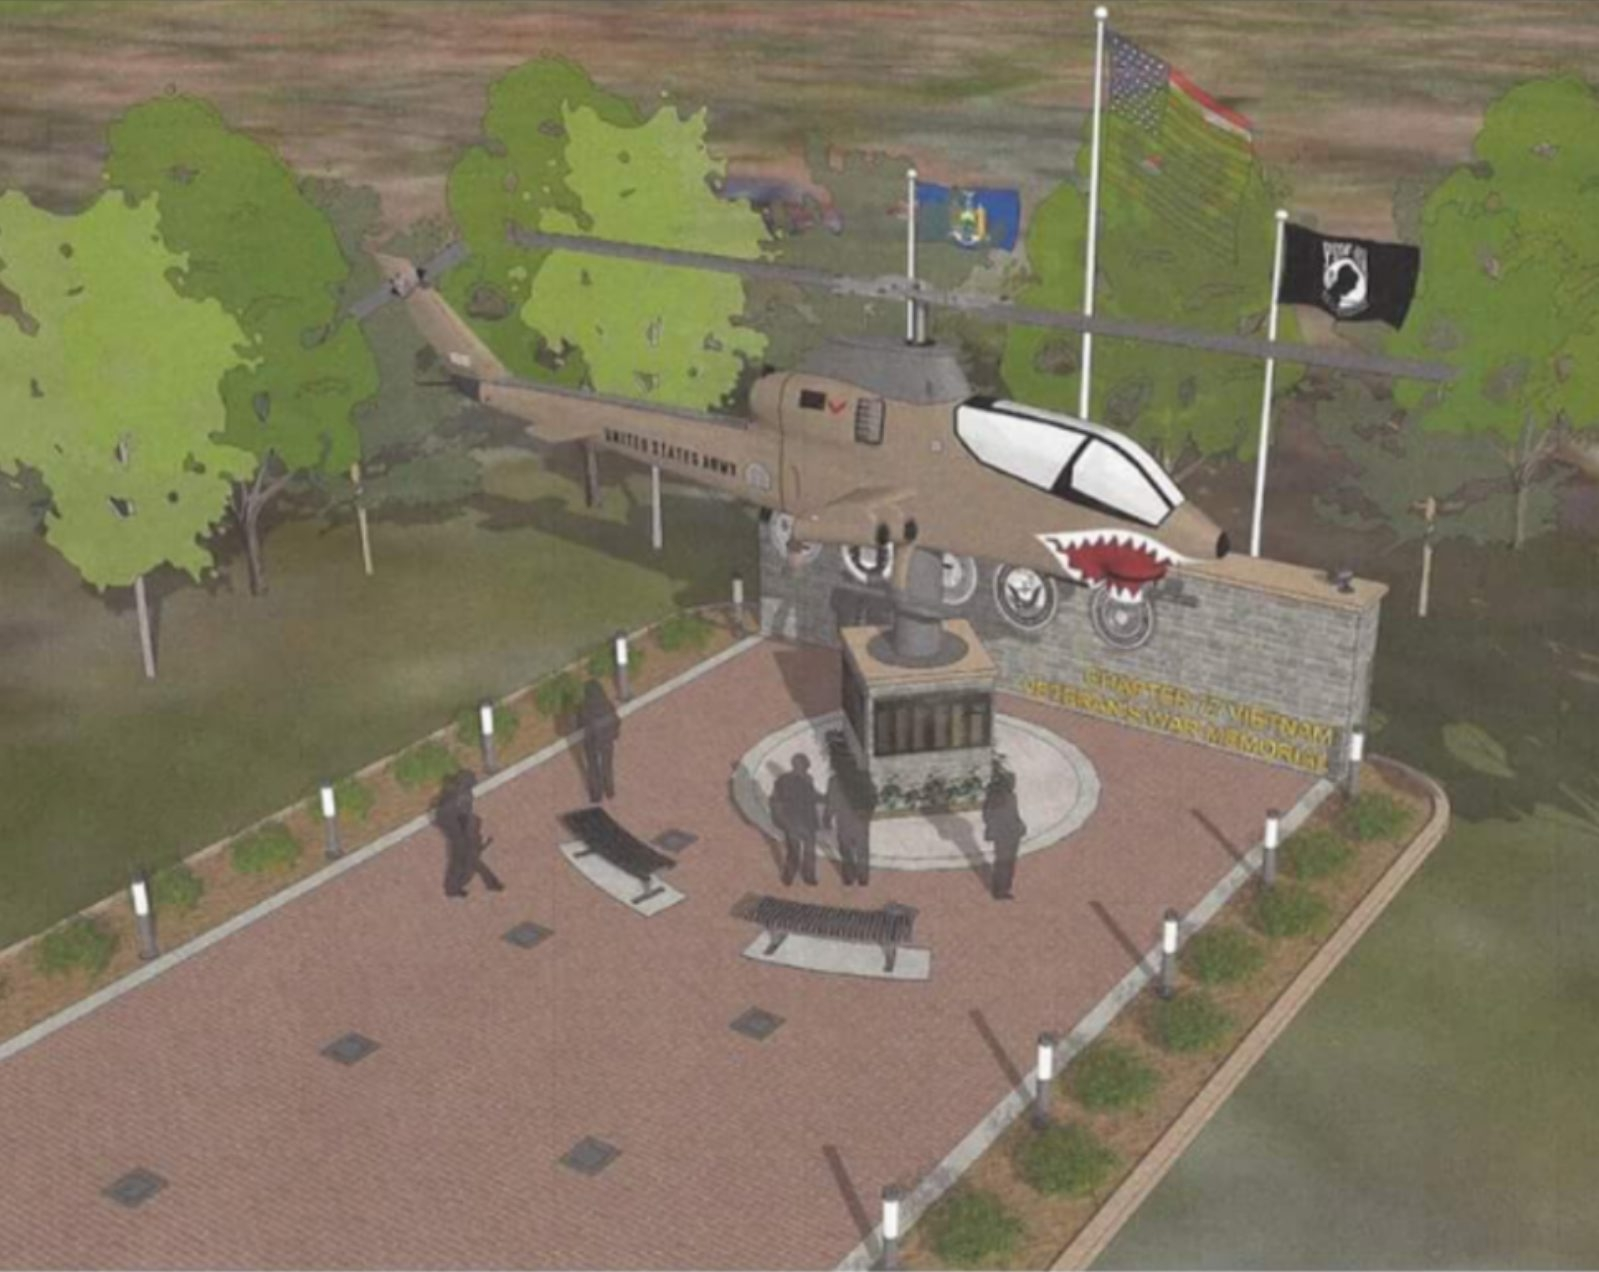 This is a sketch of the Vietnam helicopter memorial that Chapter 77 of the Vietnam Veterans of America wants to erect at at the entrance to Veterans Park in the City of Tonawanda.